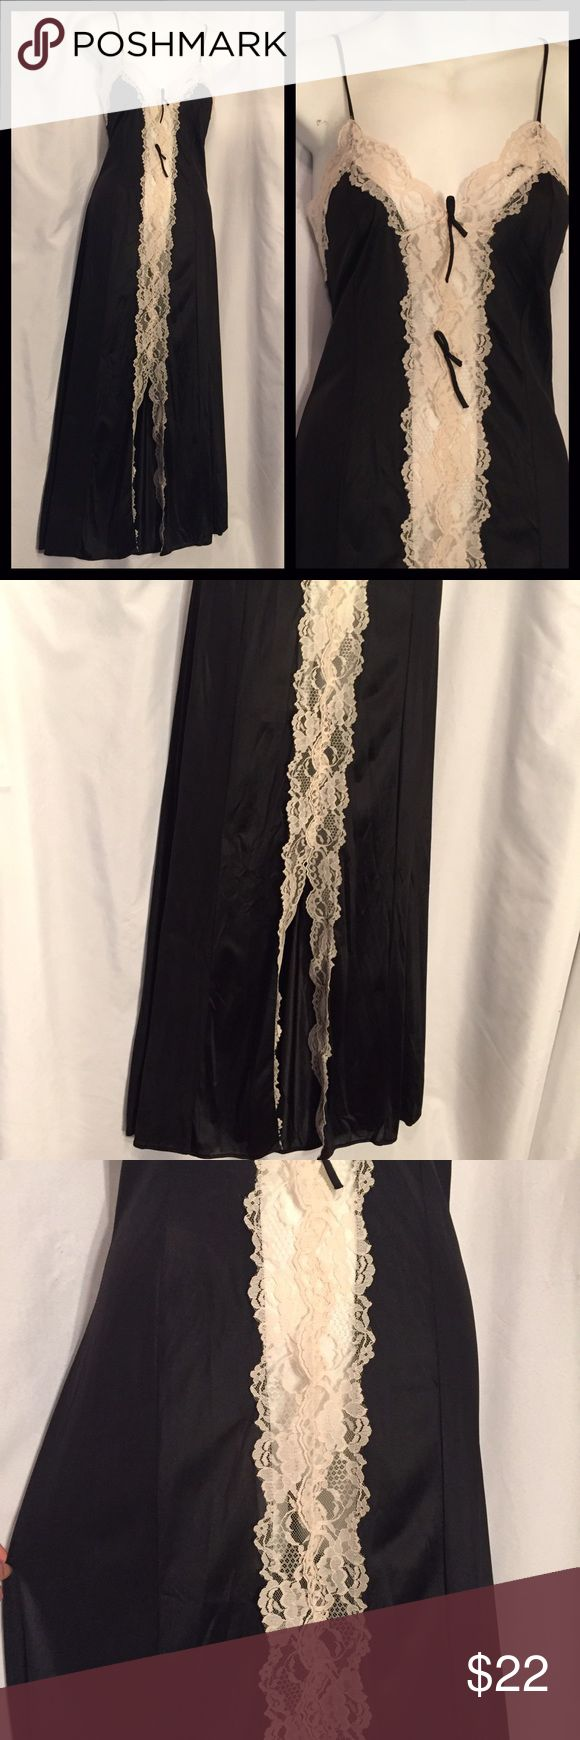 Vintage black lingerie gown Sheer Center lace M Beautiful black nylon full length nightgown with large sheer center lace. Two small bows at the top at that have come untied, very thin spaghetti straps, bottom center of gown have a sexy slit. No flaws 100% nylon by JCPenney size medium measures bust 34 inches waist 30 inches total length 55 inches. Vintage Intimates & Sleepwear Pajamas